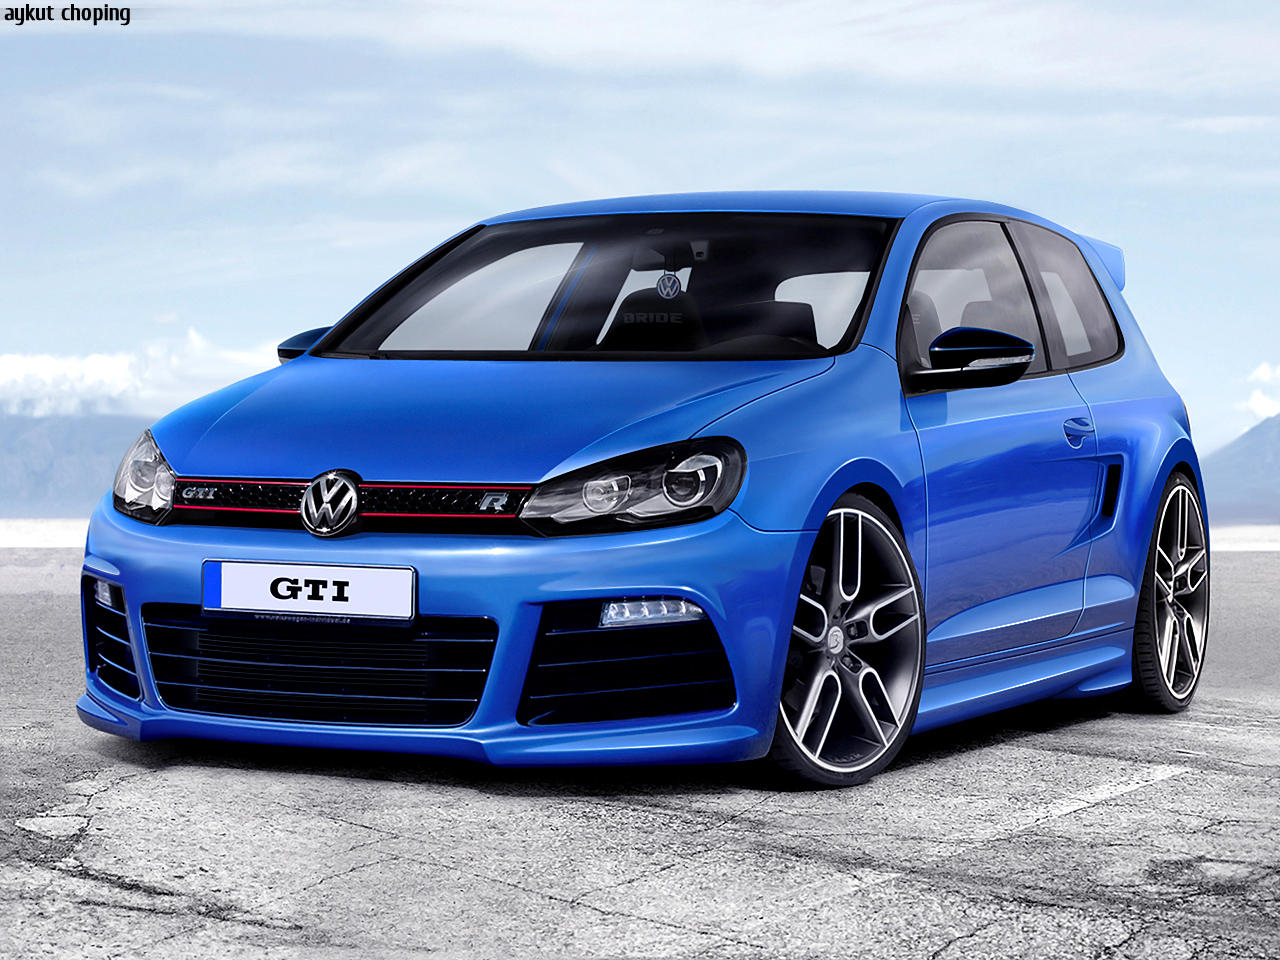 test vw golf gti vs gtd auto motor und sport tv. Black Bedroom Furniture Sets. Home Design Ideas